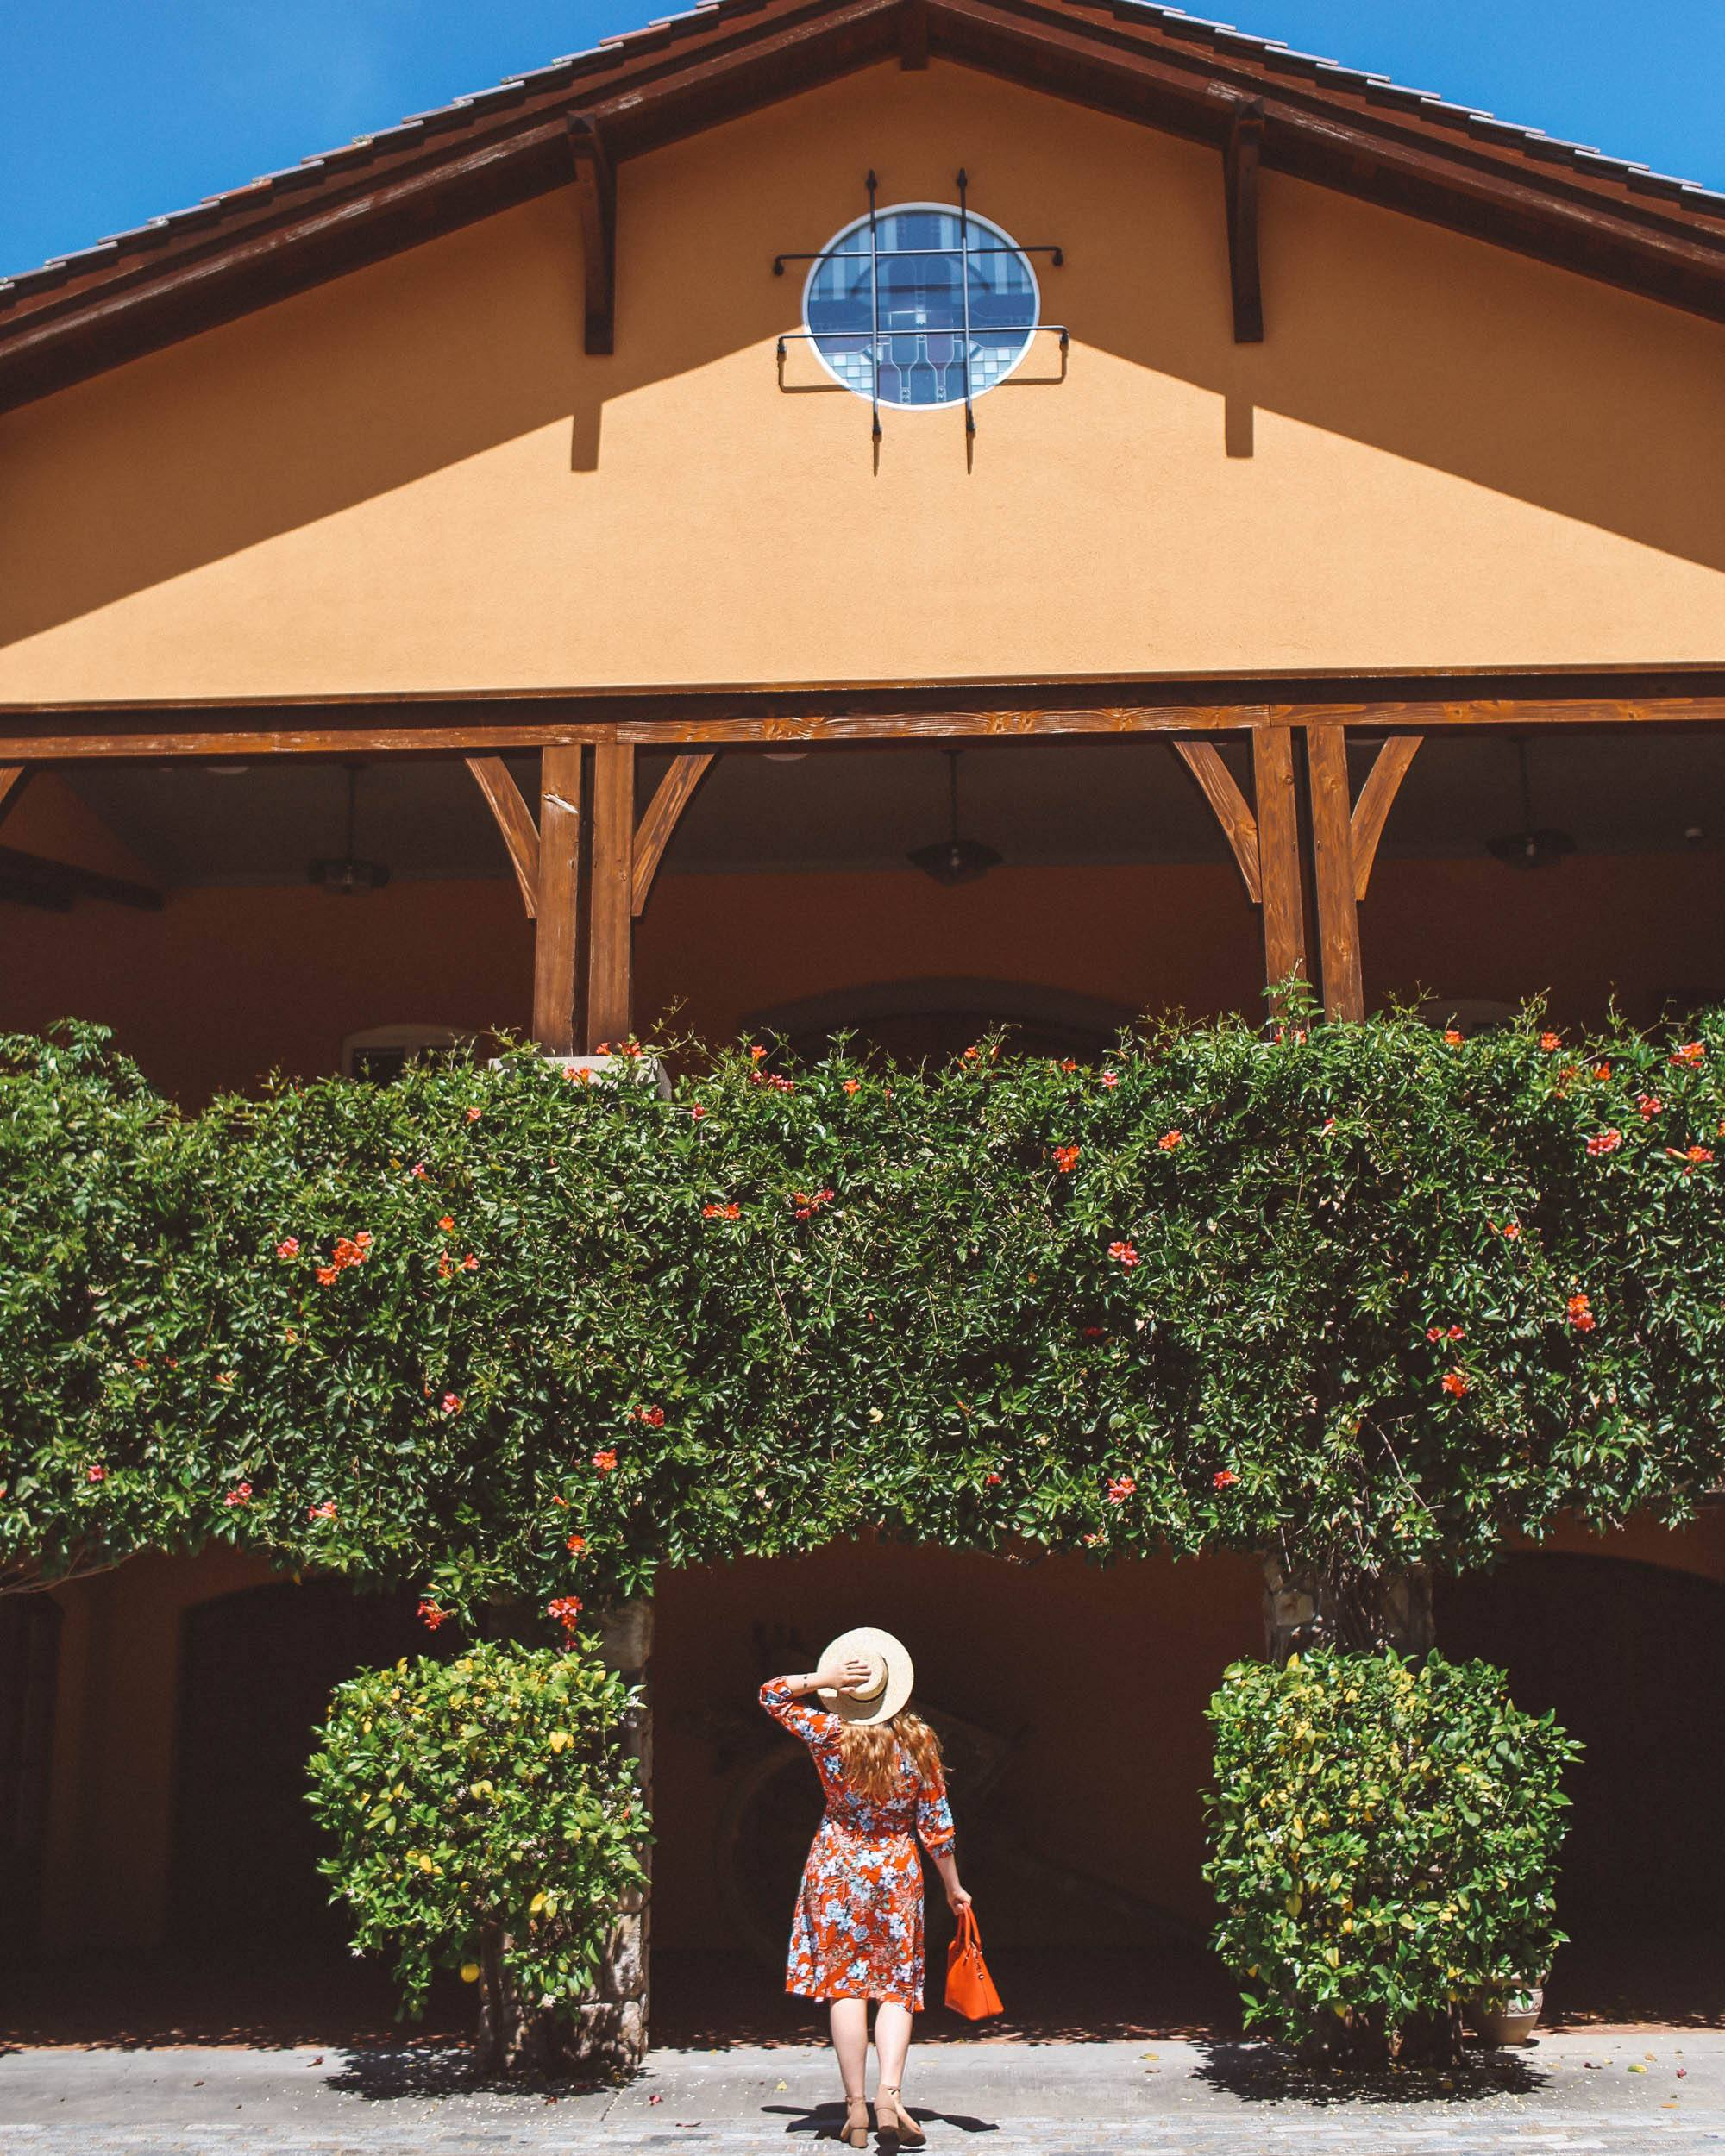 Woman in floral dress and straw hat at a Napa Valley Winery